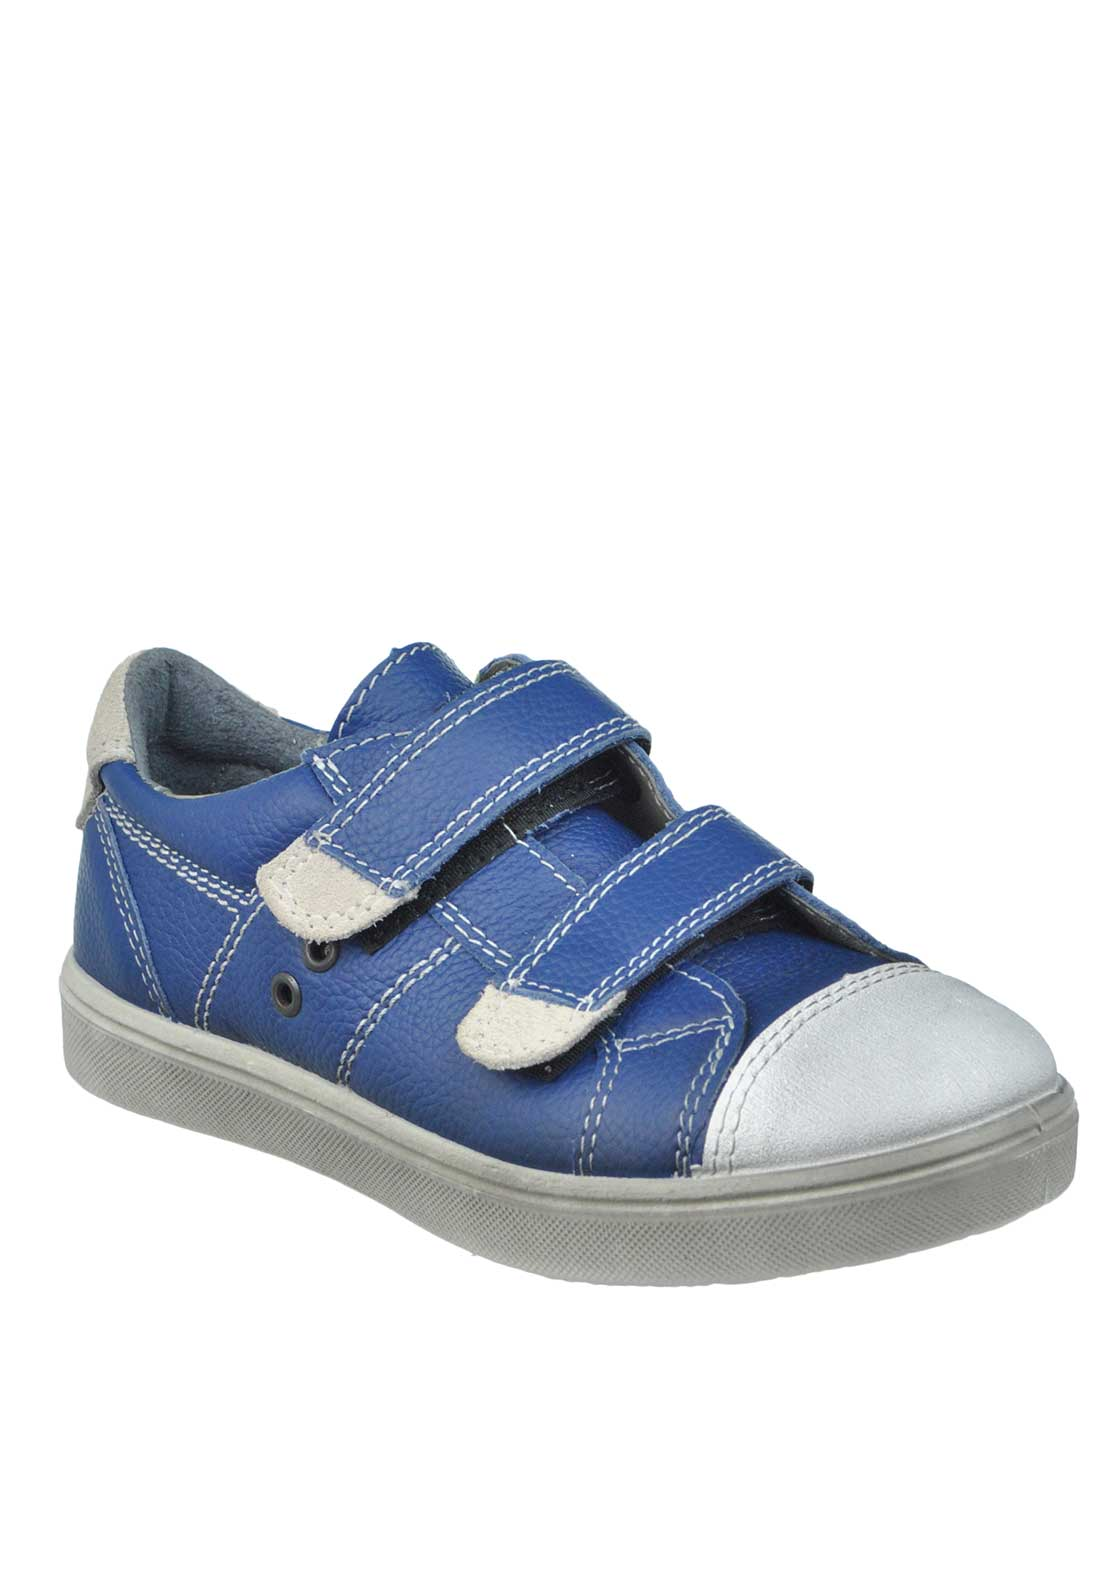 Ricosta Kids Jenson Leather Velcro Strap Trainers, Navy